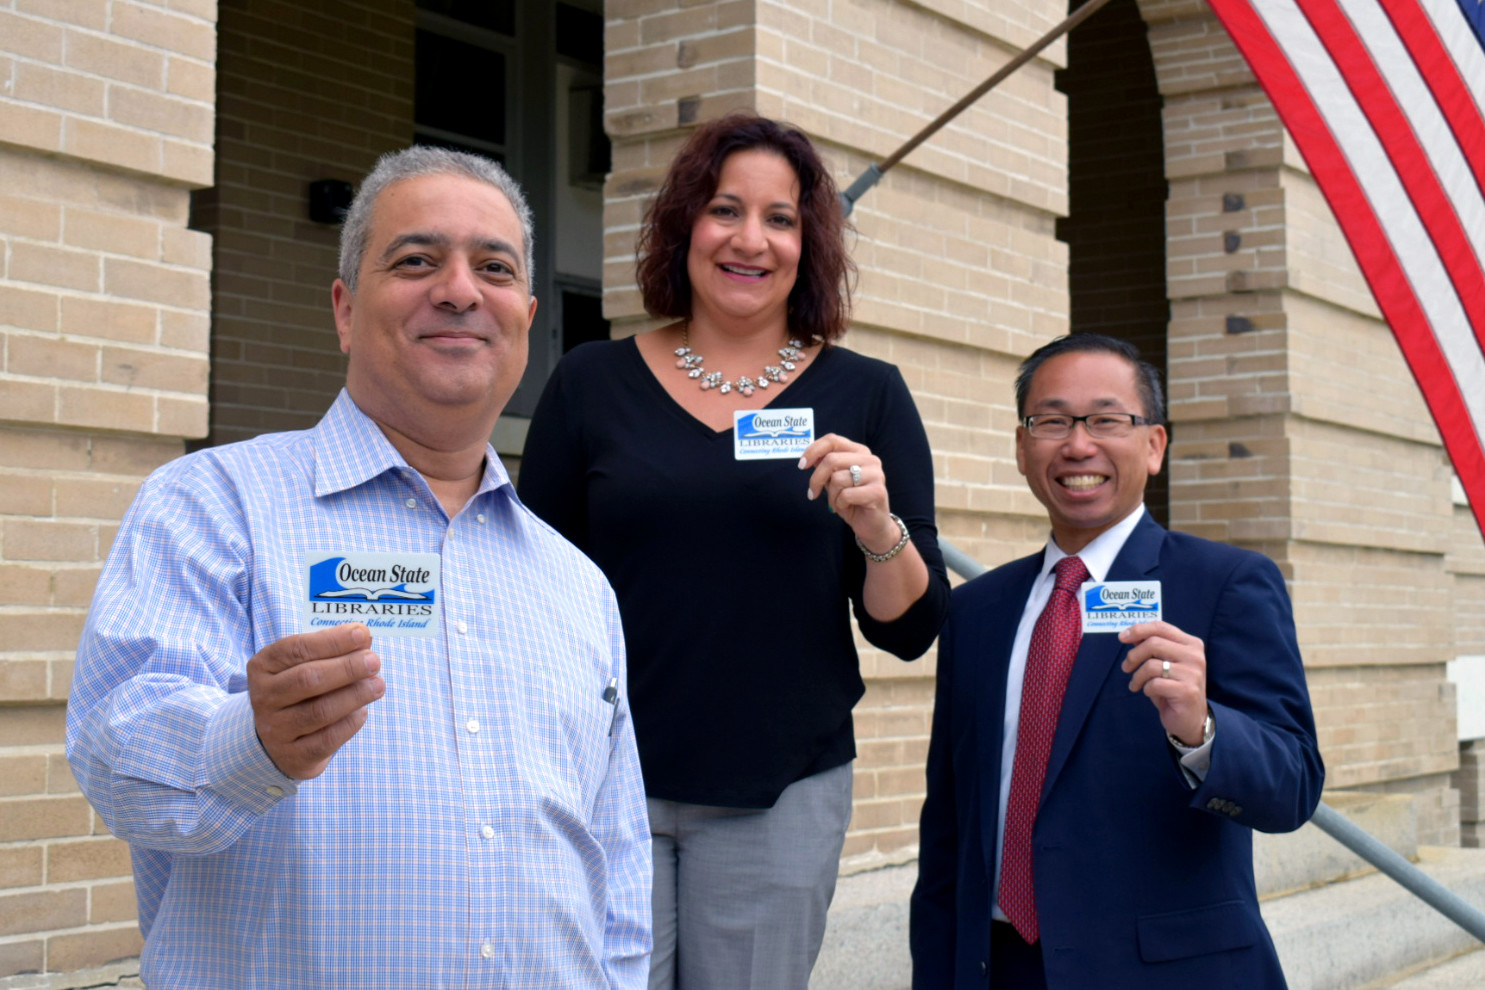 FRESH START: Pictured are Library Director Ed Garcia, Superintendent Jeannine Nota-Masse, and Mayor Allan W. Fung as they proudly present library cards to promote 'Fresh Start,' an initiative to make sure all students in Cranston have a working library card.